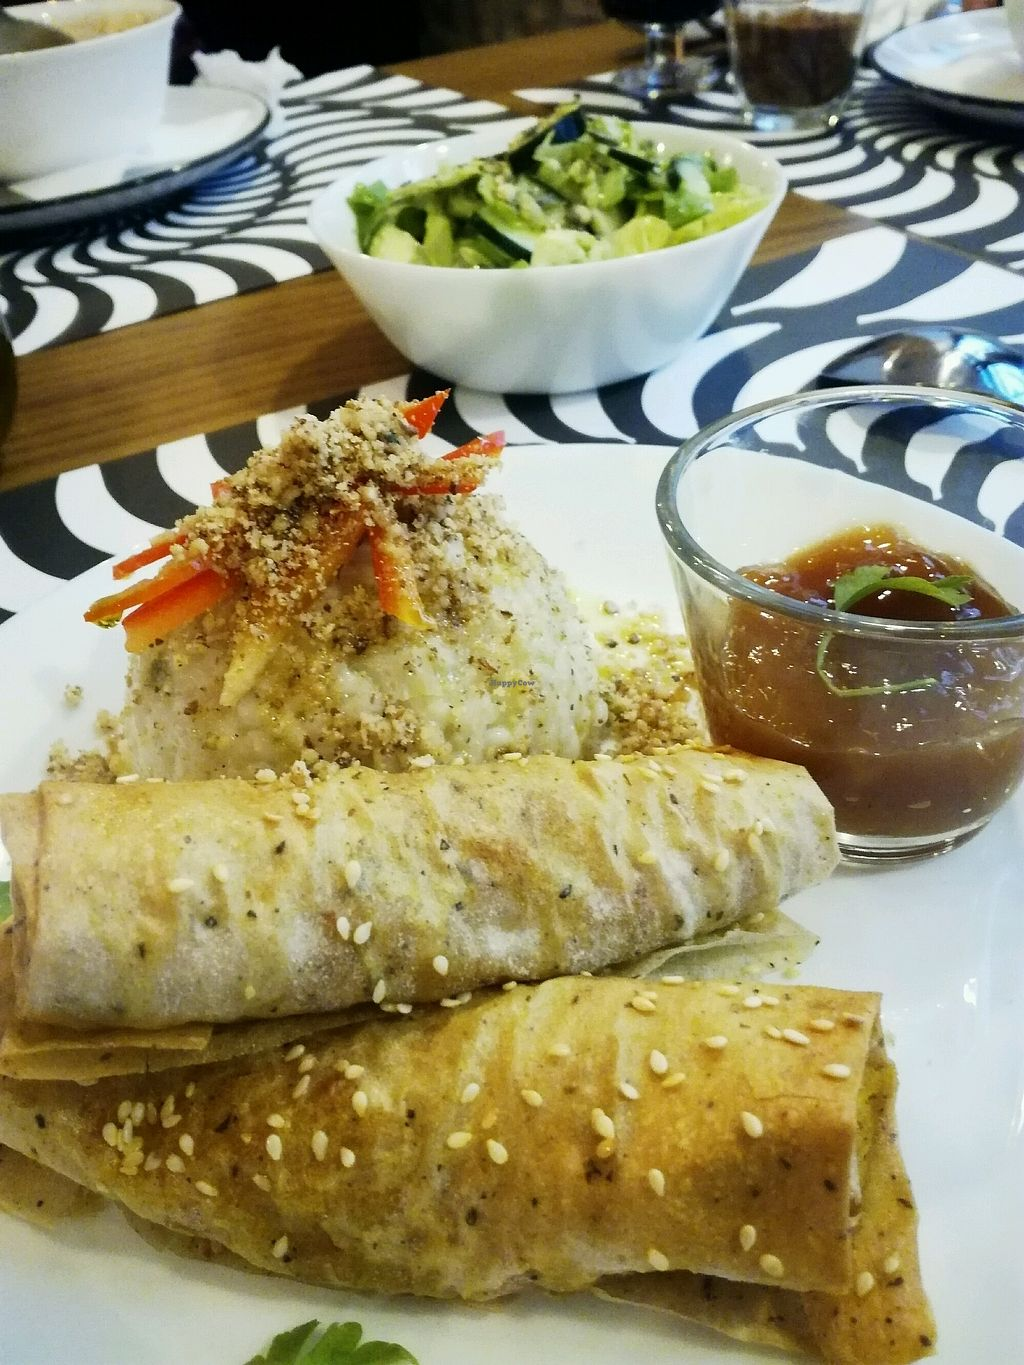 "Photo of Bananas Veggie & Raw Cuisine  by <a href=""/members/profile/MajaBranovacki"">MajaBranovacki</a> <br/>Spring rolls in sweet and sour sauce <br/> November 27, 2017  - <a href='/contact/abuse/image/105991/329740'>Report</a>"